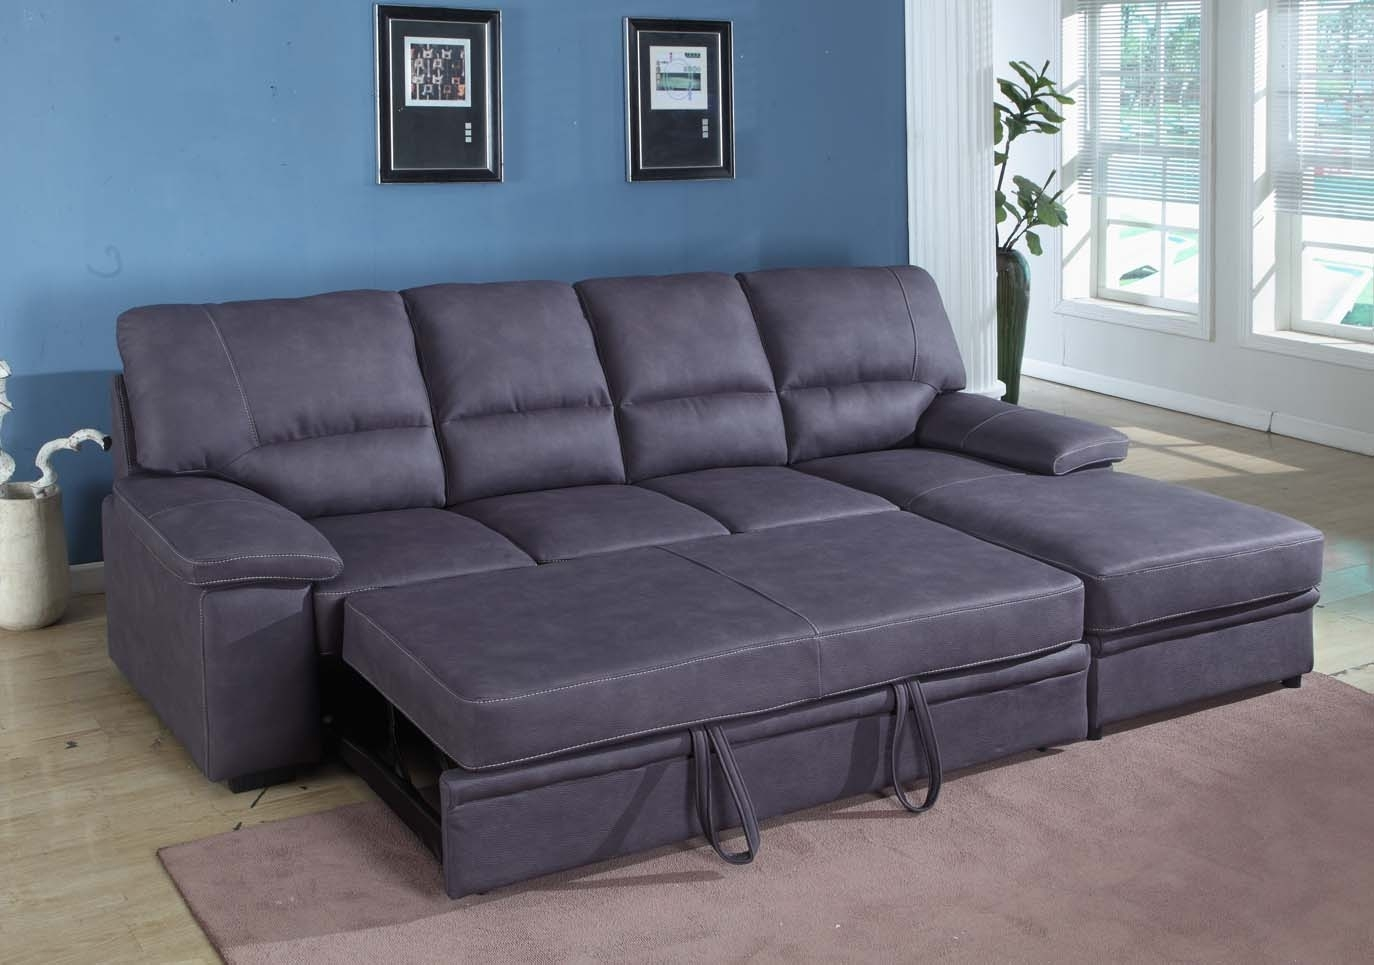 Seating Furniture – Sleeper Sectional Sofa – Pickndecor Intended For Lucy Grey 2 Piece Sleeper Sectionals With Raf Chaise (View 9 of 25)